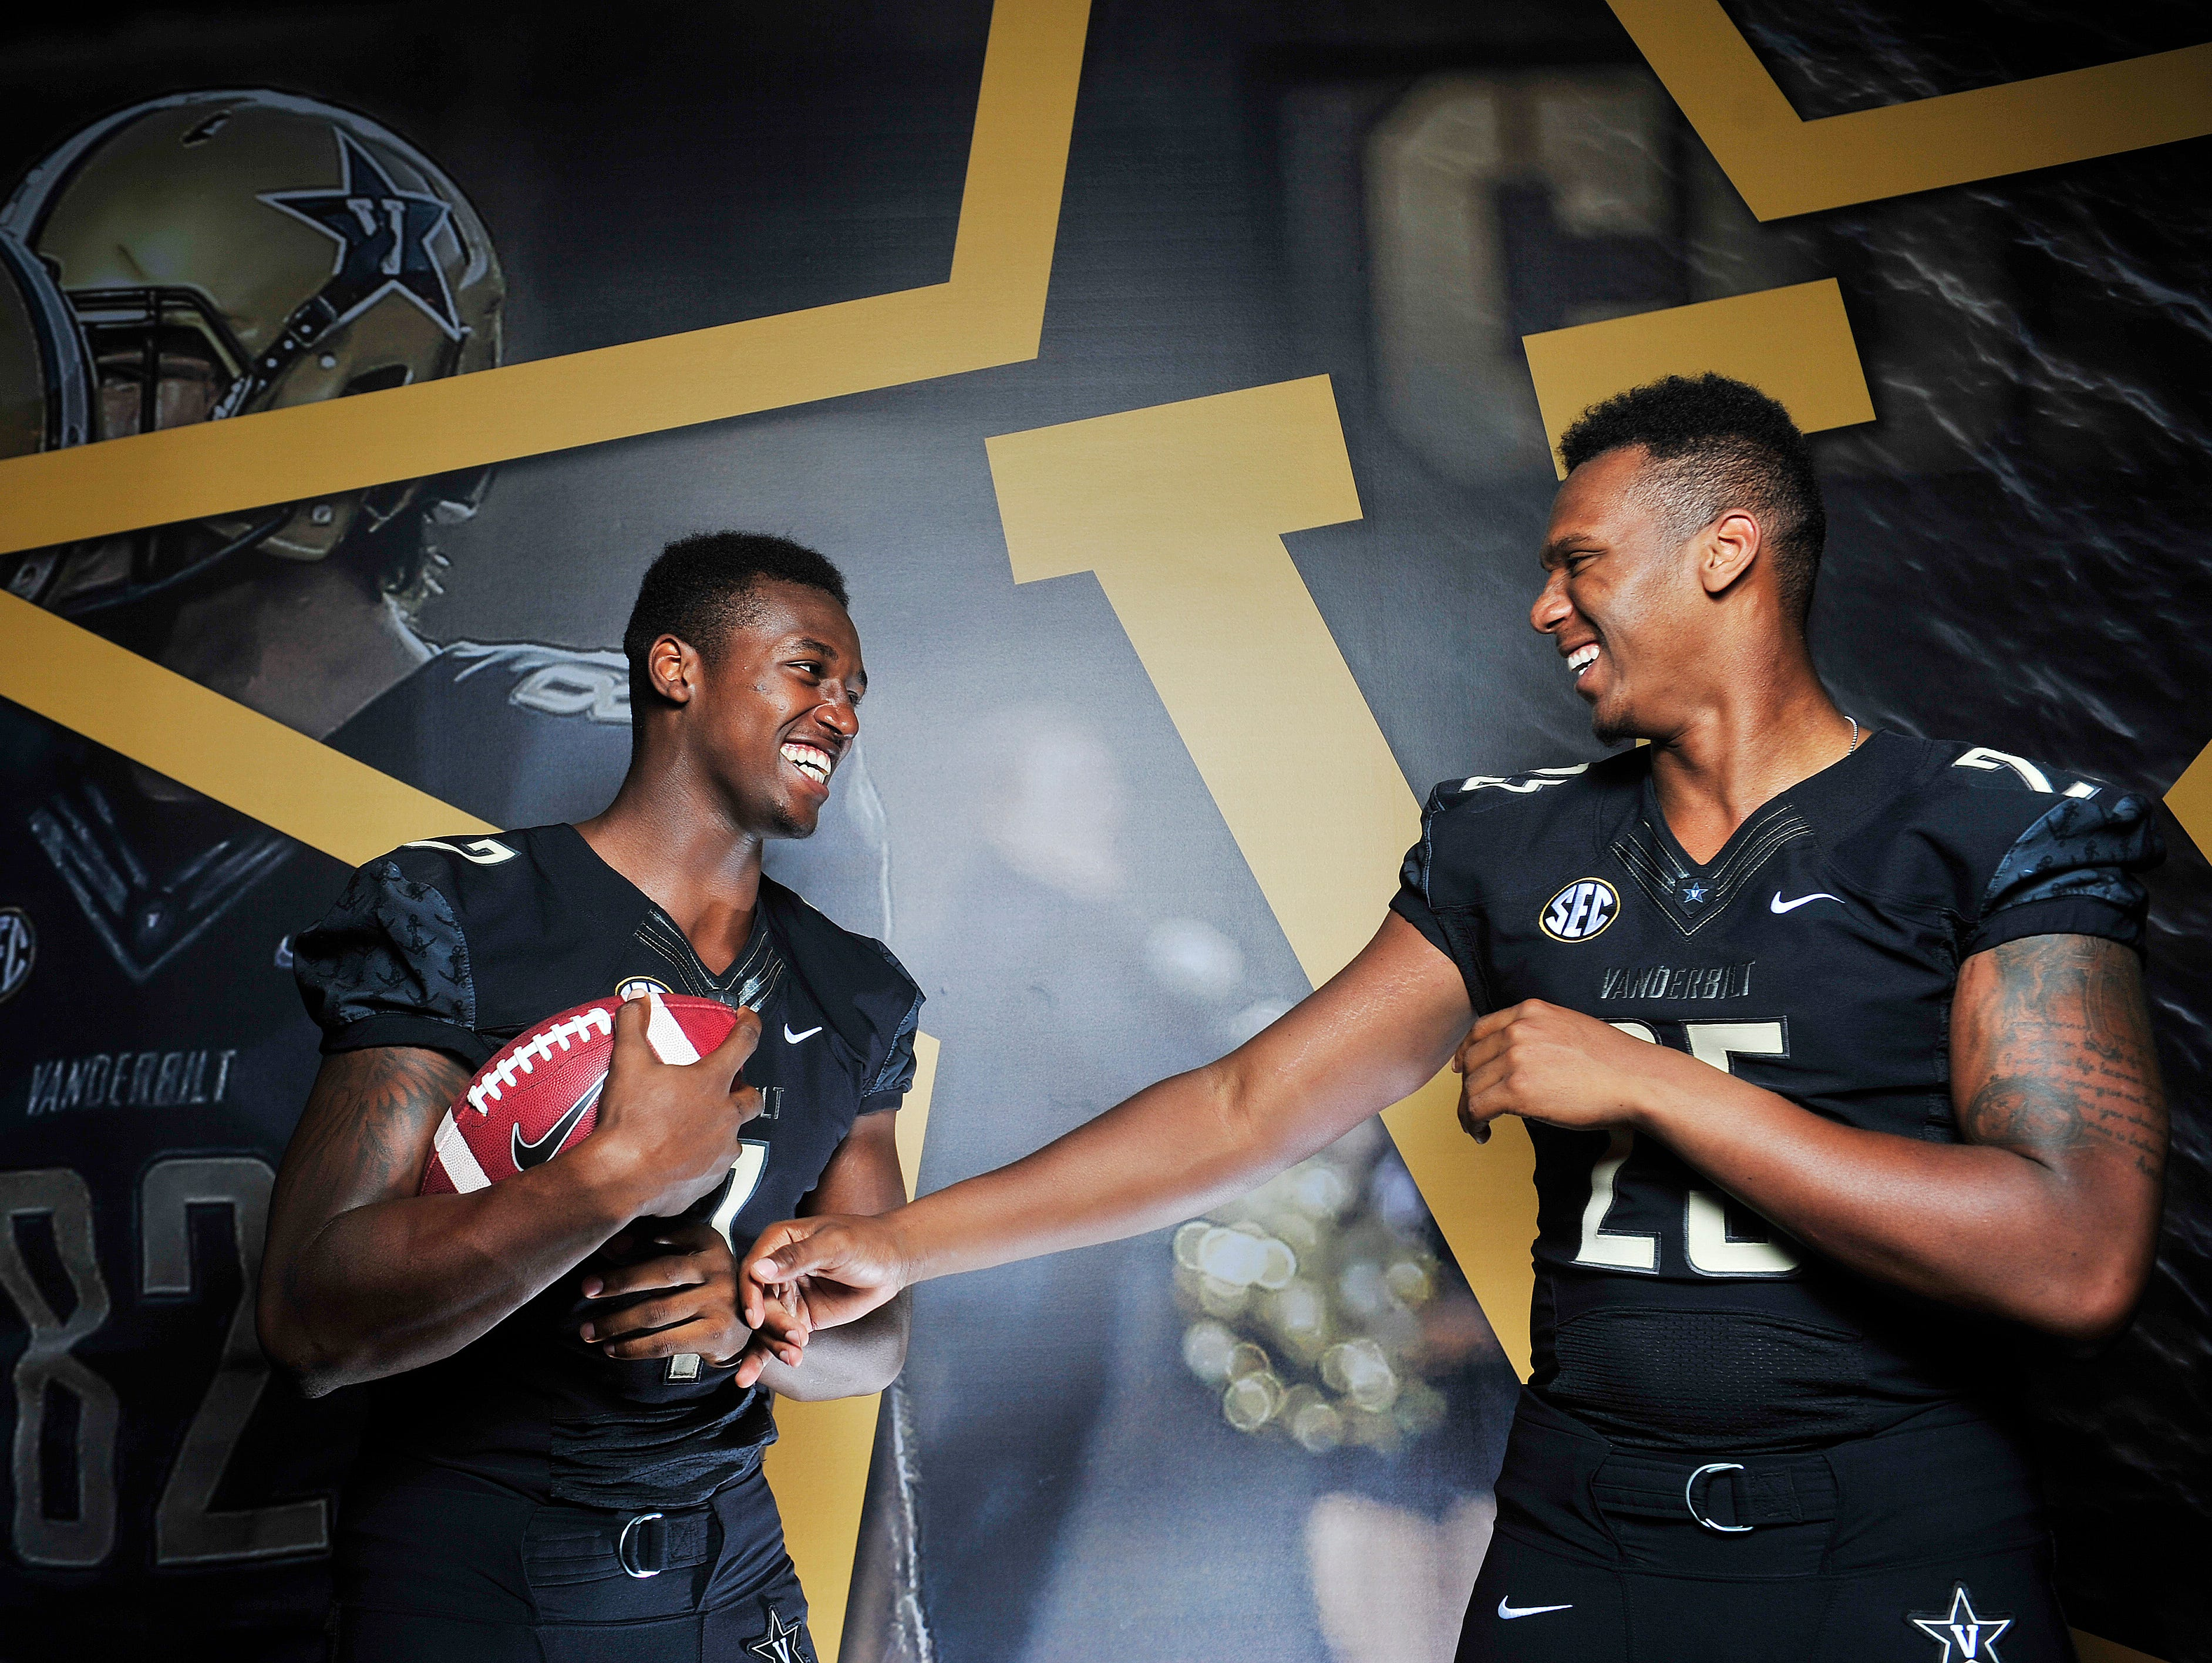 Vanderbilt players and brothers Emmanuel Smith, left, and Josh Smith lived in adjacent rooms during preseason camp, but soon they will be in different dorms.